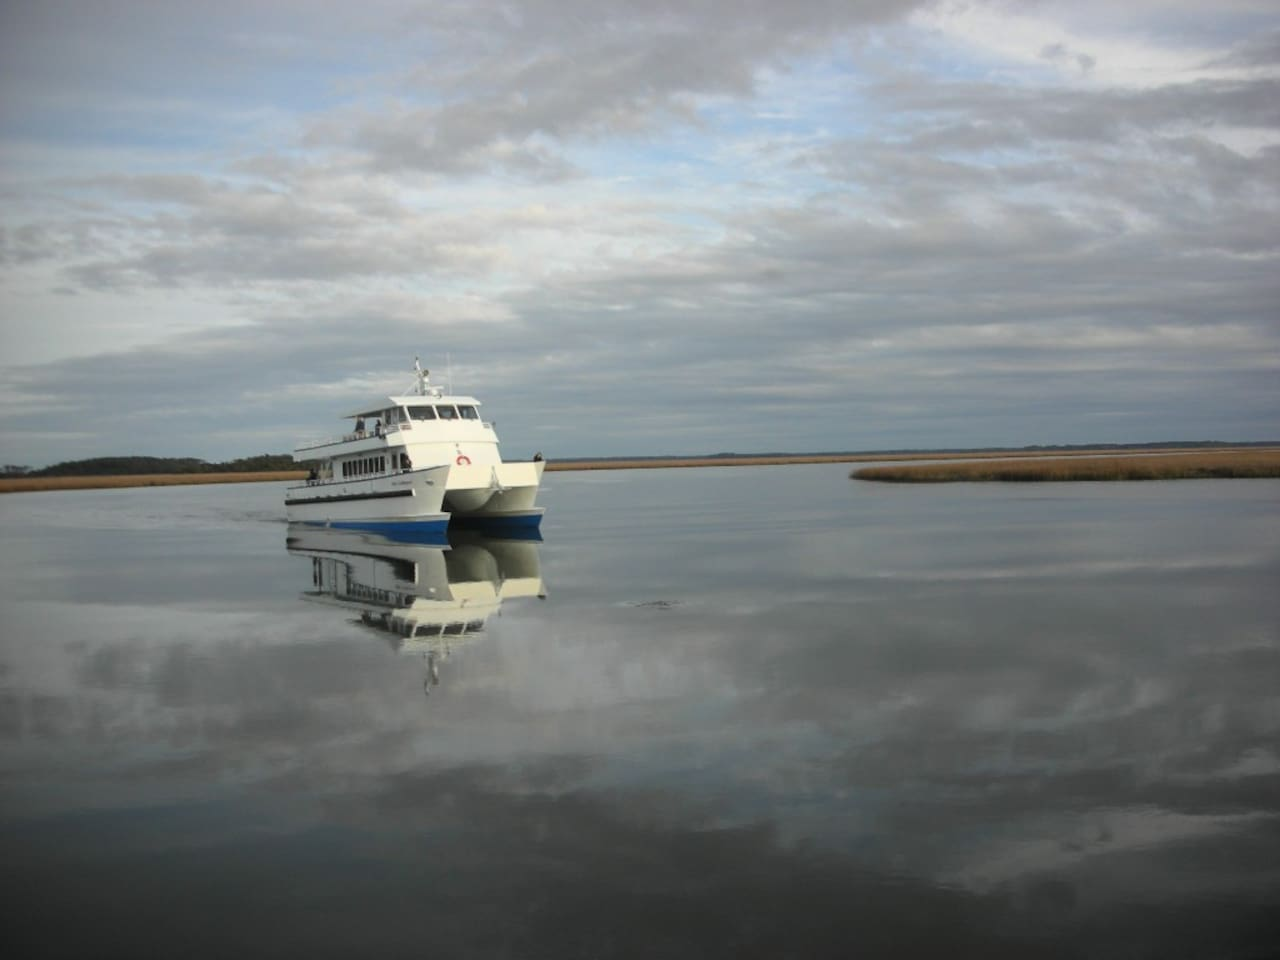 Your transport to My Sapelo Retreat, the passenger ferry Katy Underwood